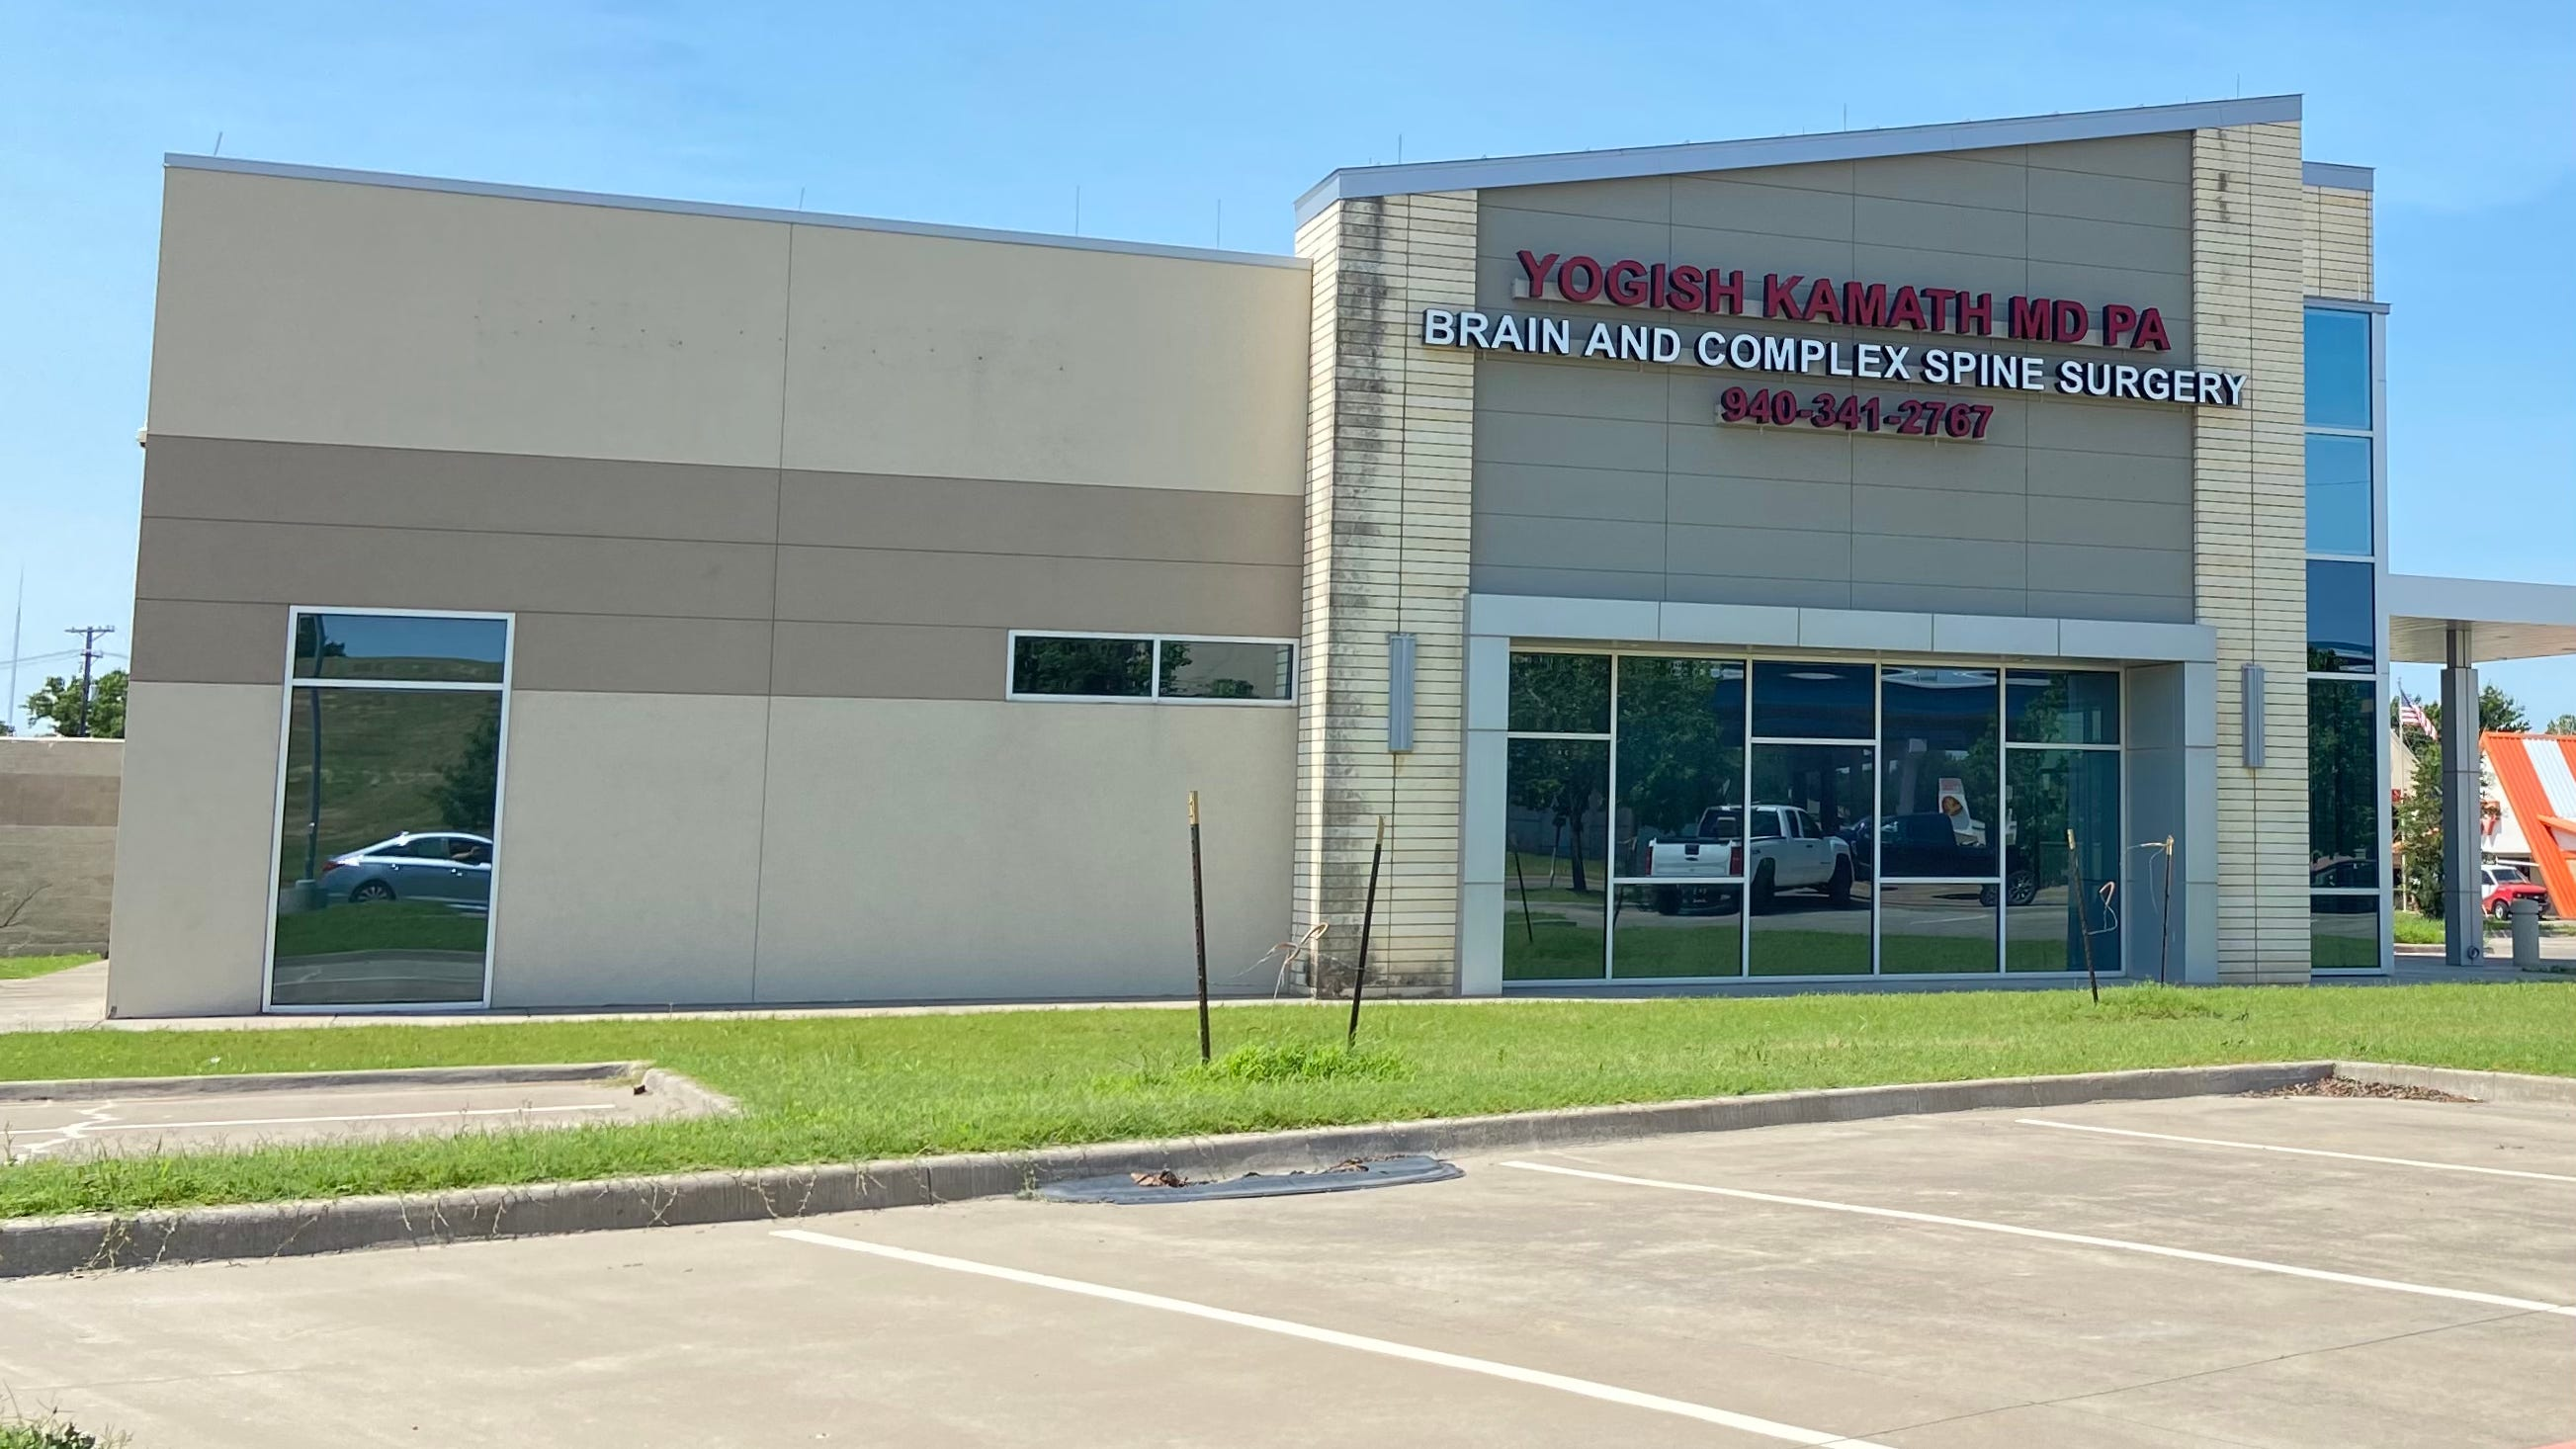 New surgery facility opens in former emergency care clinic